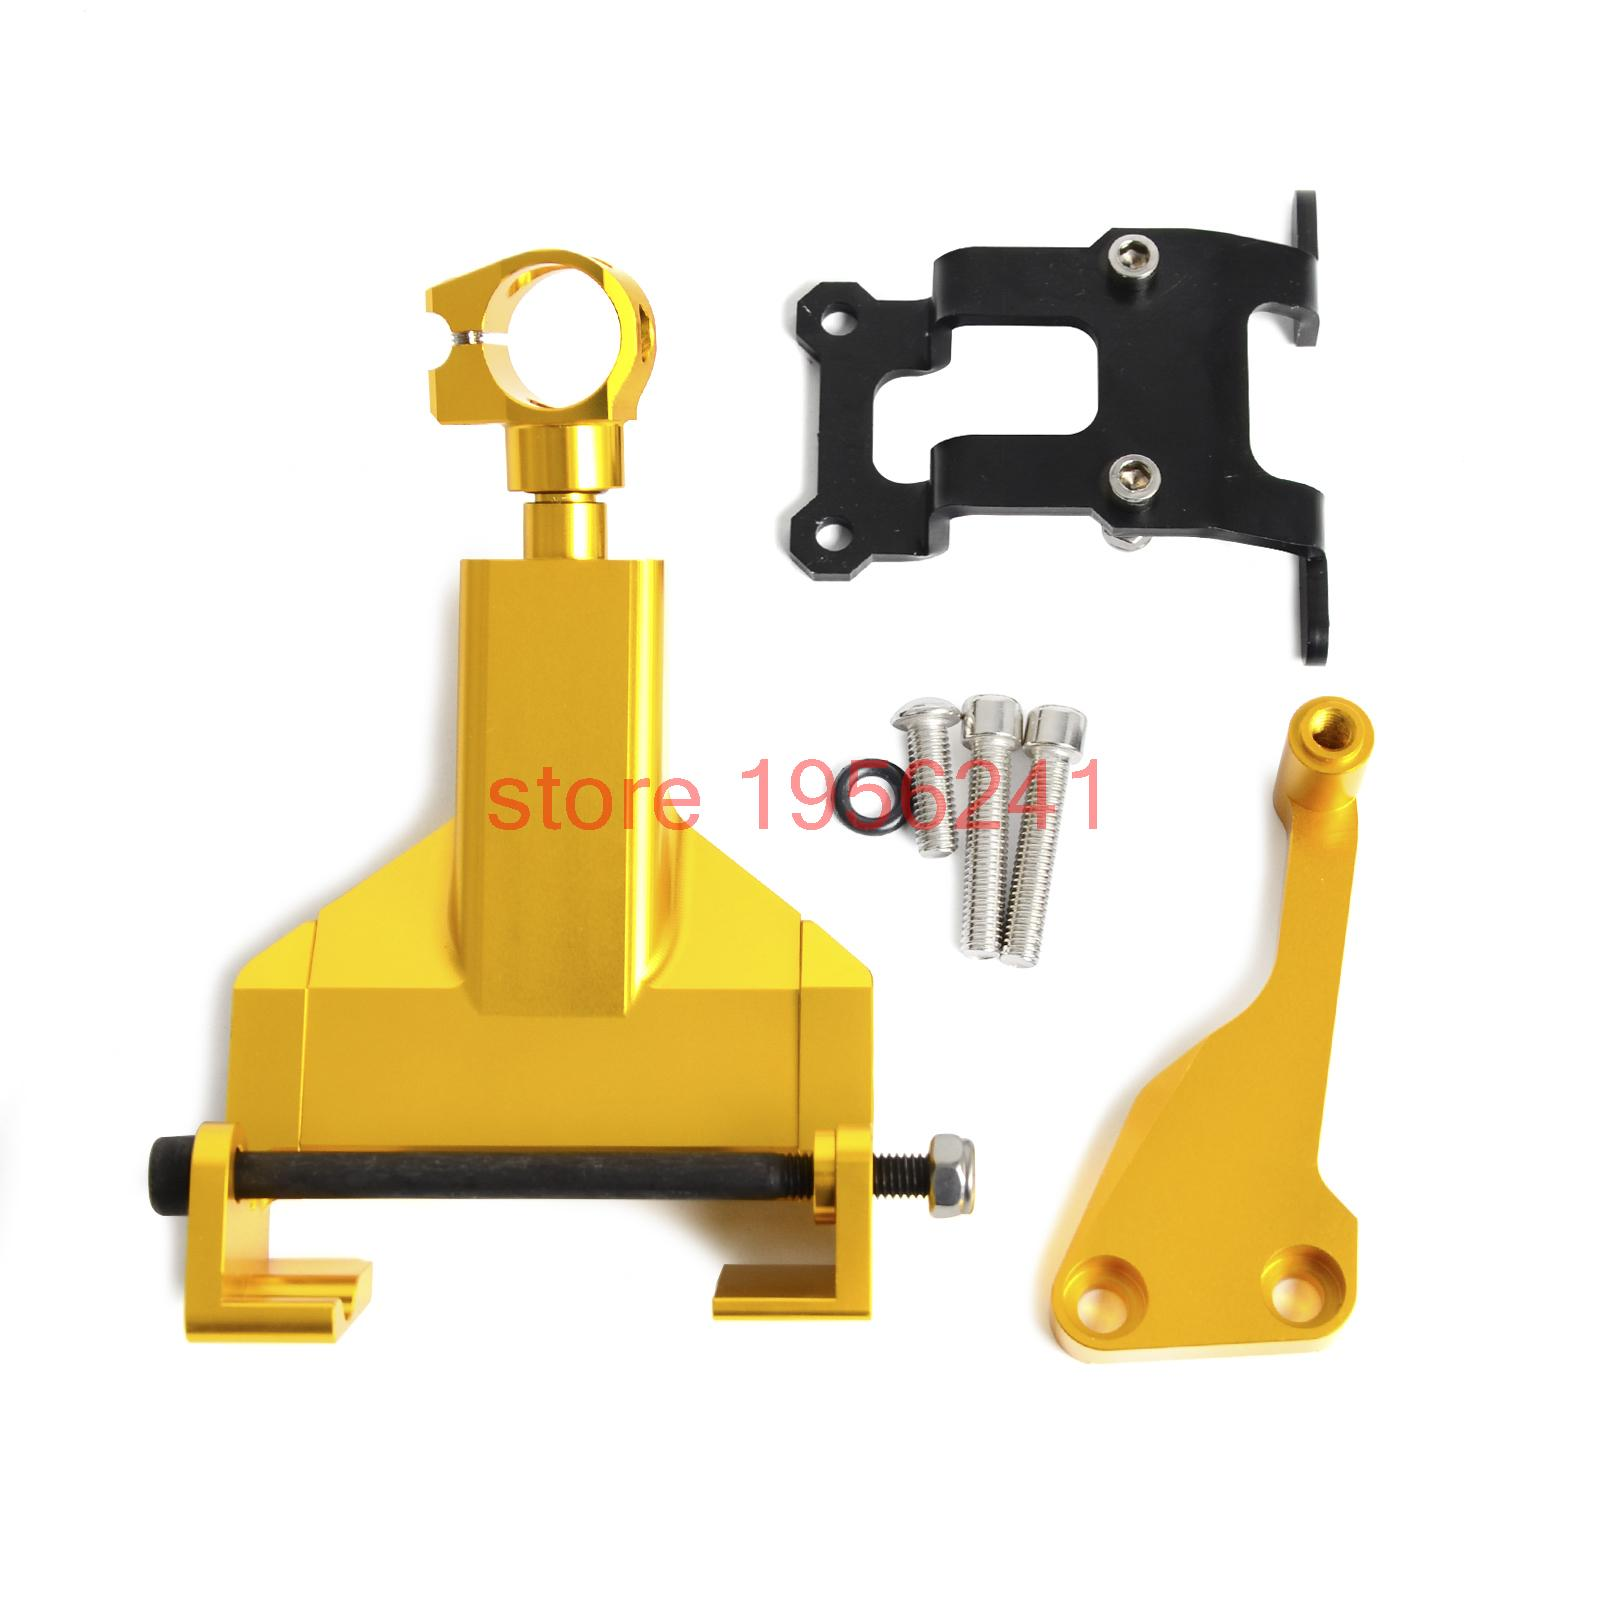 Gold Motorcycle Stablizer Damper Mounting Bracket Kit For Yamaha MT-07 MT07 MOTO CAGE 2014 2015 2016 for yamaha mt 03 2015 2016 mt 25 2015 2016 mobile phone navigation bracket